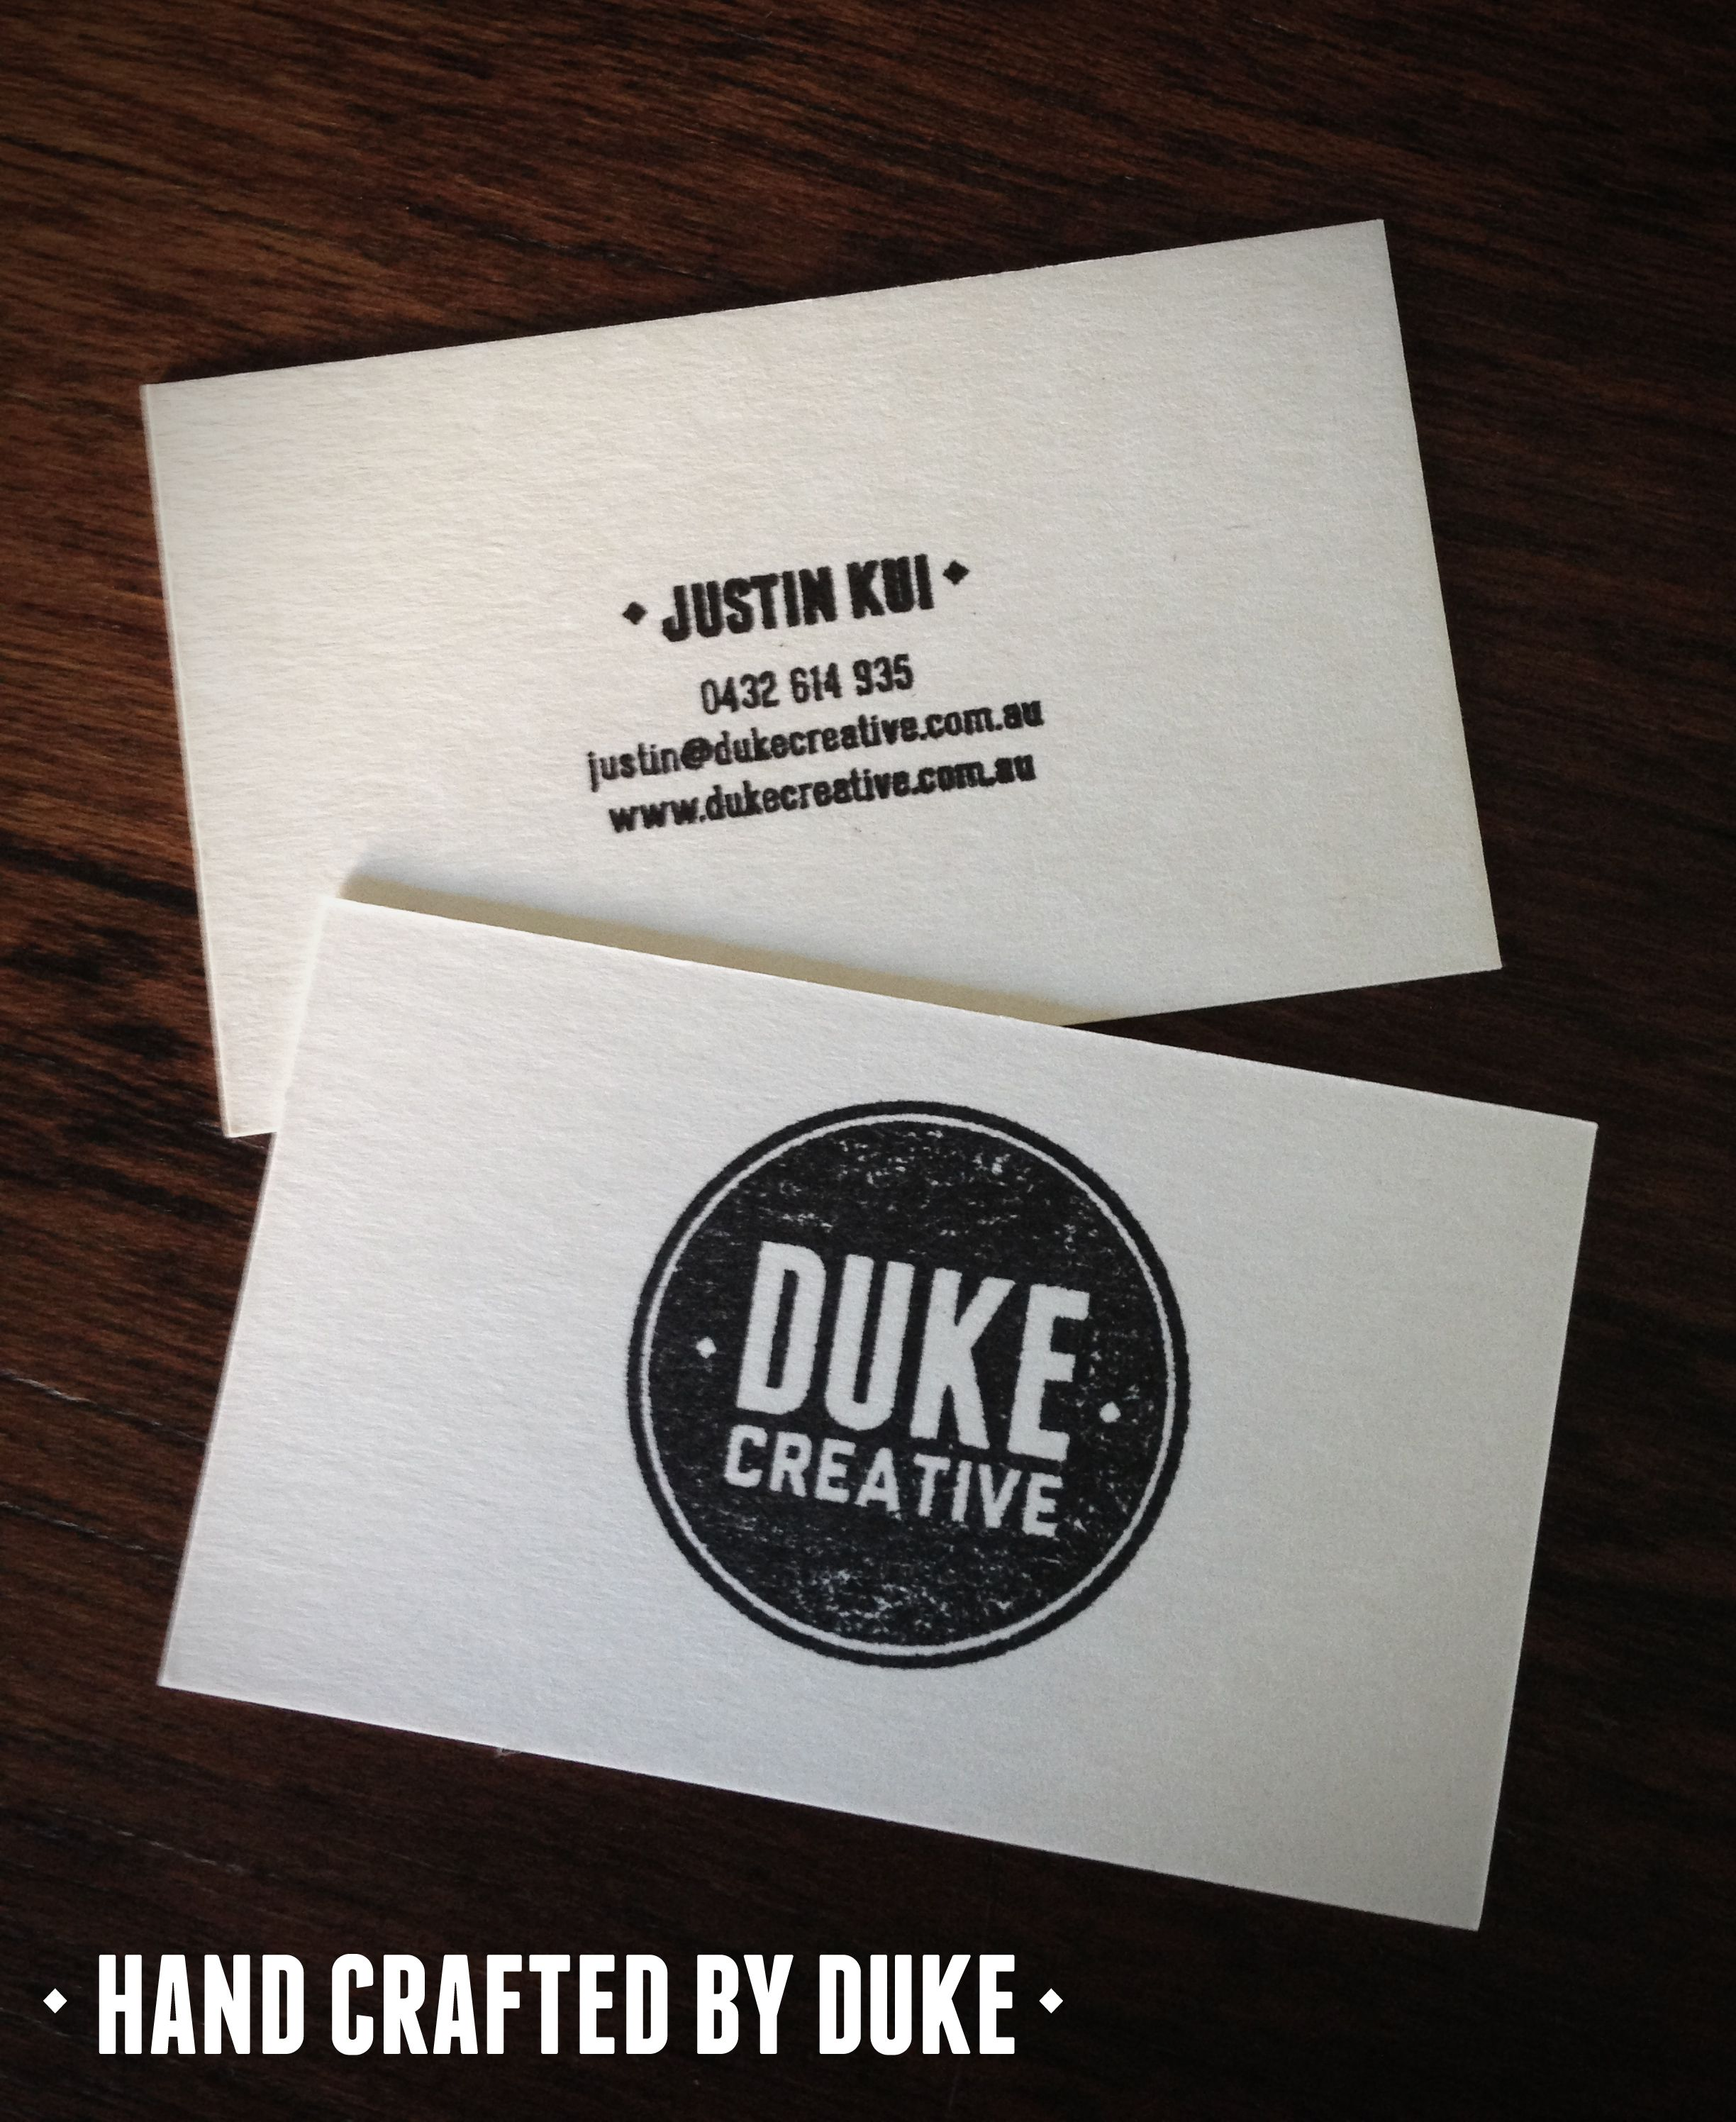 rubber stamp business cards on beer mat stock by duke creative